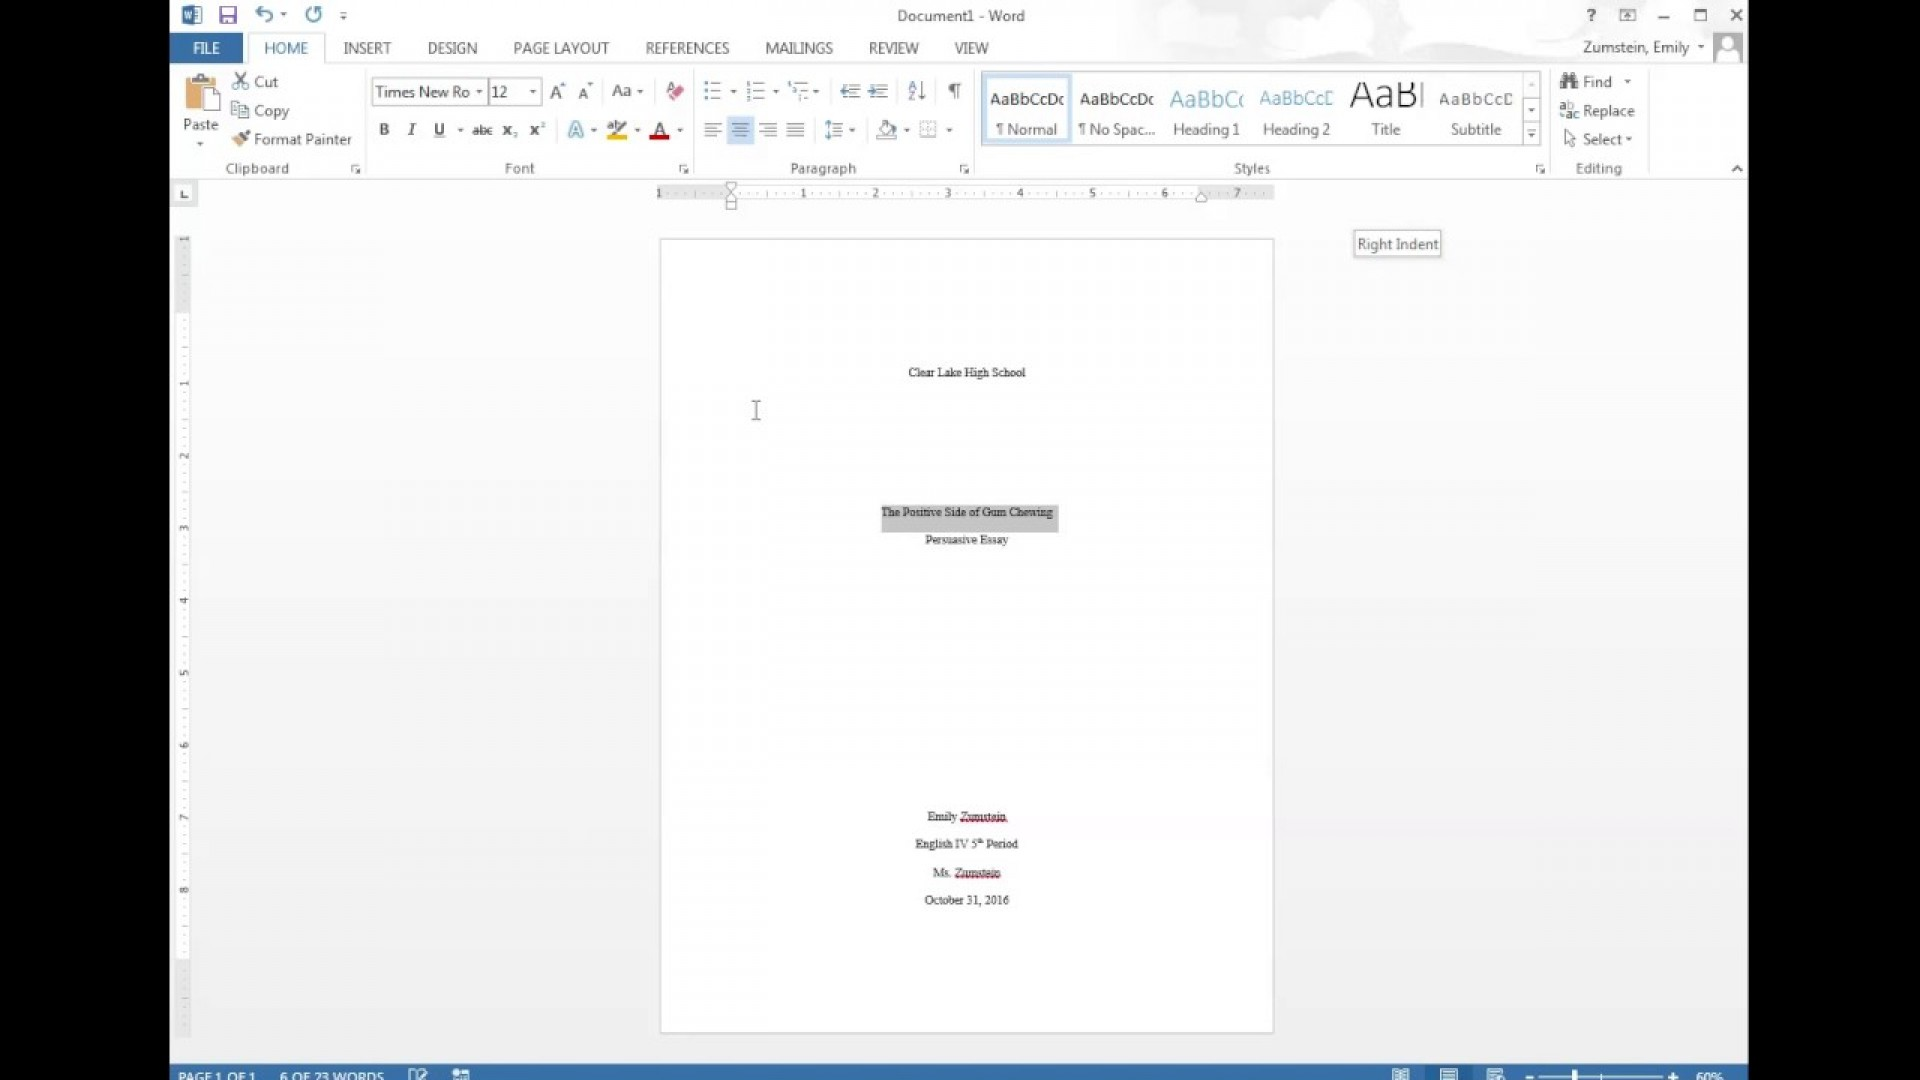 001 How To Make Cover Page For Mla Research Paper Marvelous A 1920